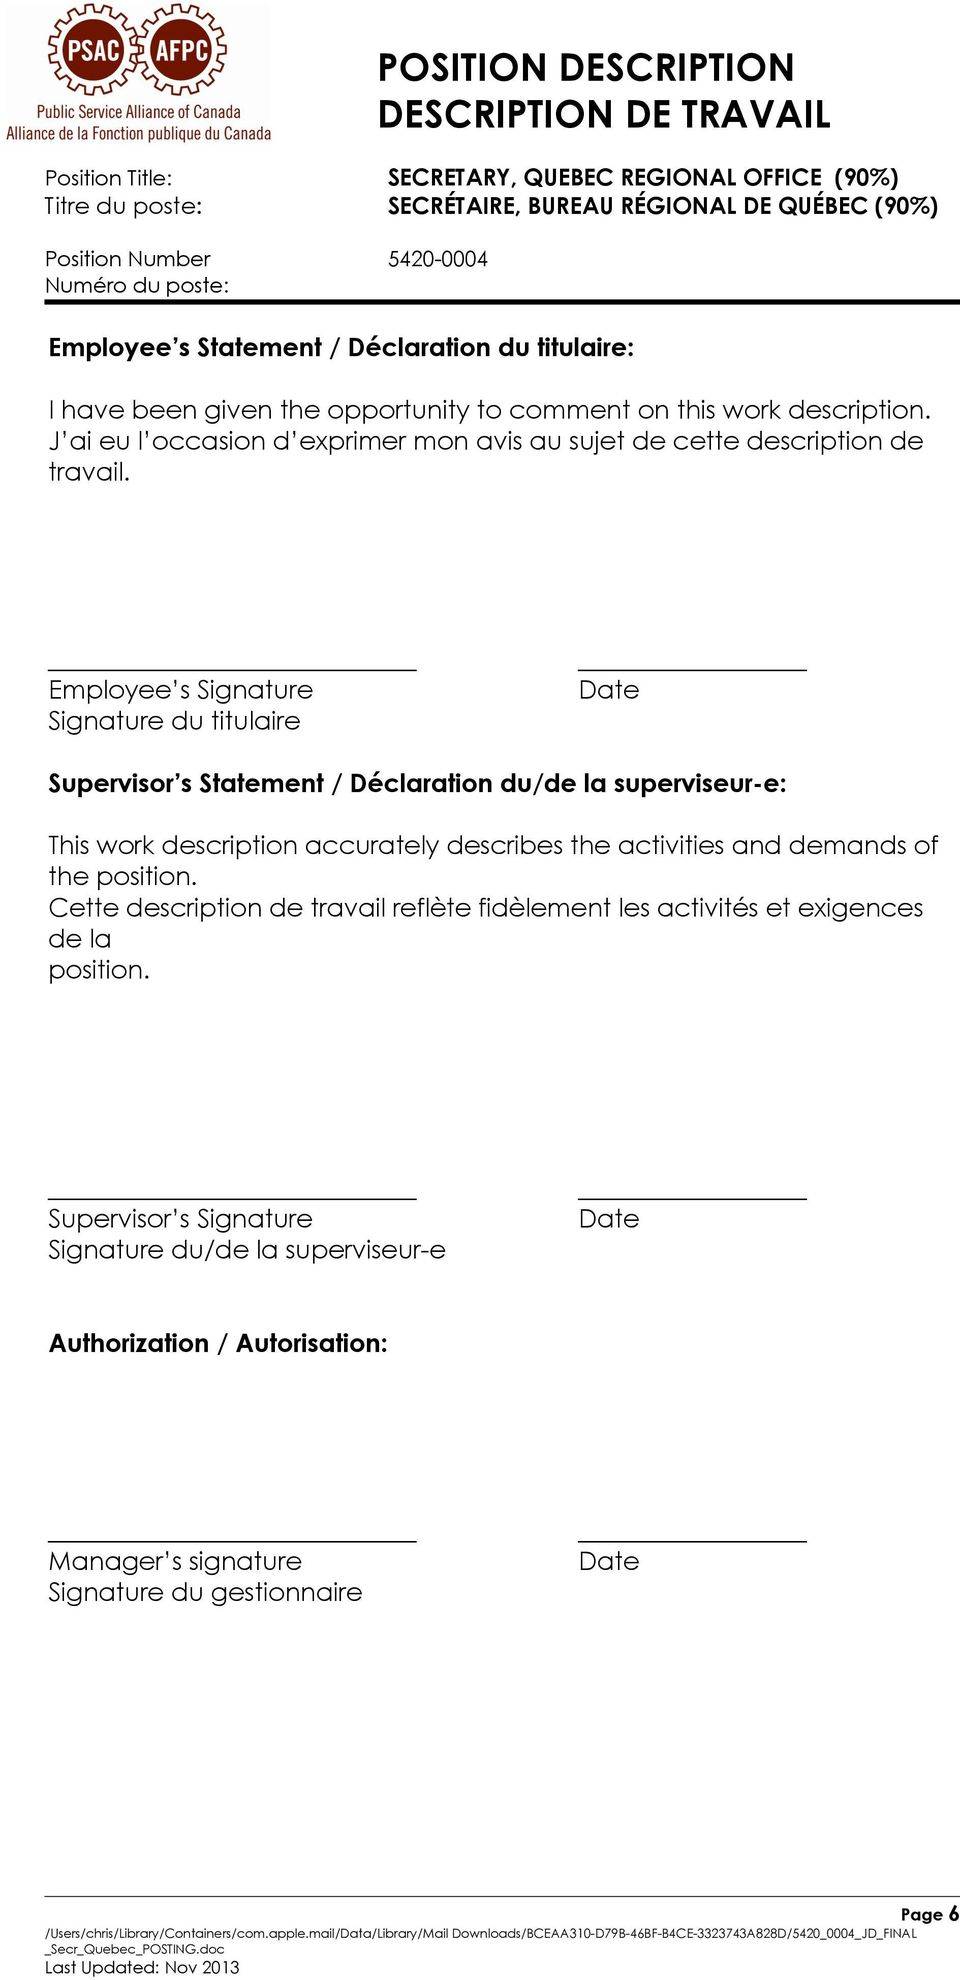 Employee s Signature Signature du titulaire Date Supervisor s Statement / Déclaration du/de la superviseur-e: This work description accurately describes the